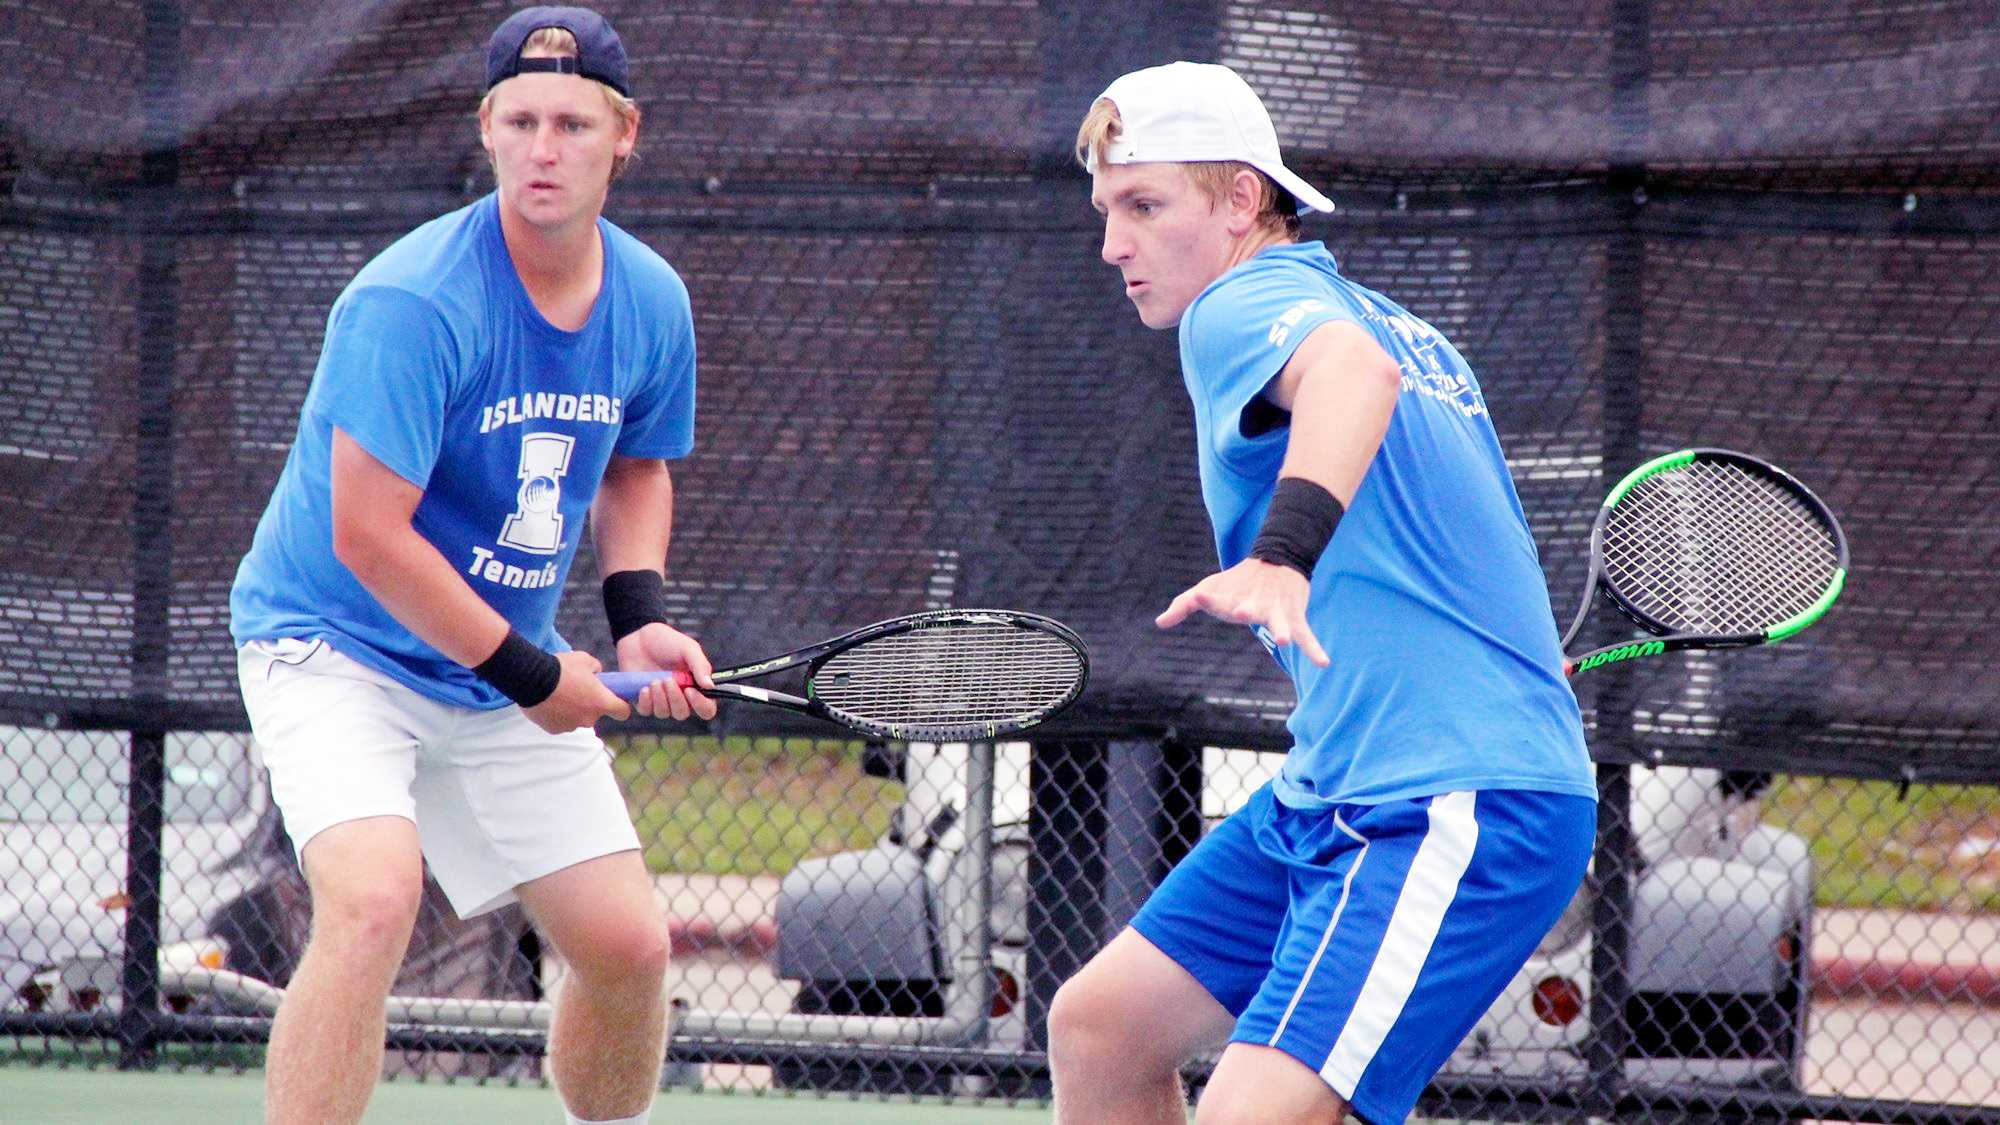 Image courtesy of facebook.com/ISLANDERS TENNIS Islander Men's Tennis player Okkie Kellerman is named after his father.